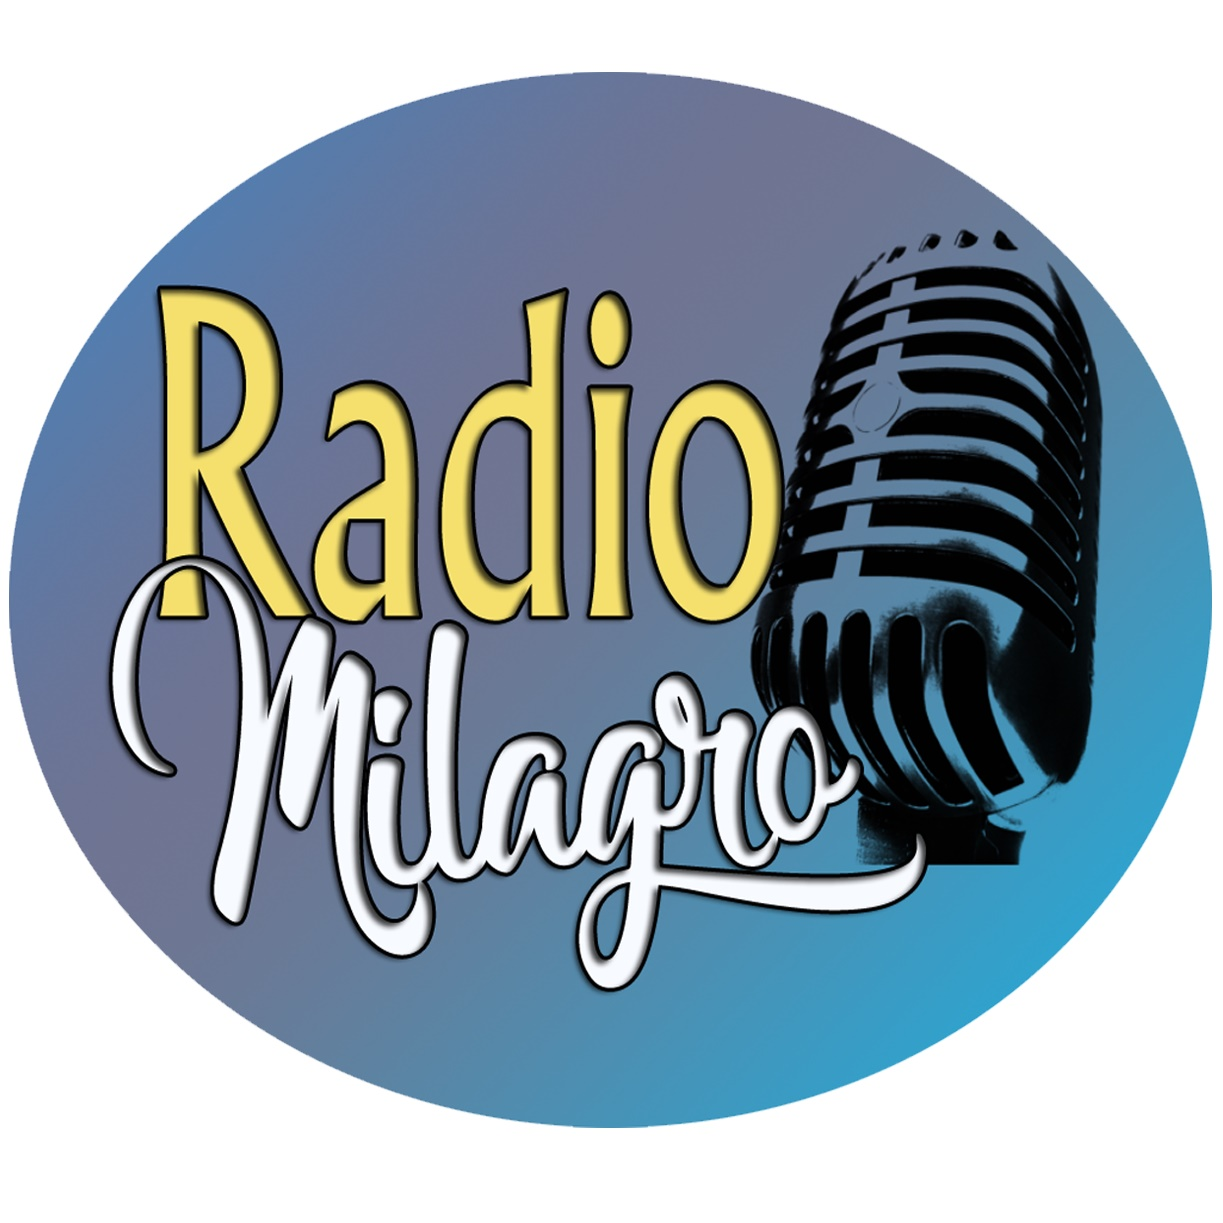 Facebook Radio Milagro